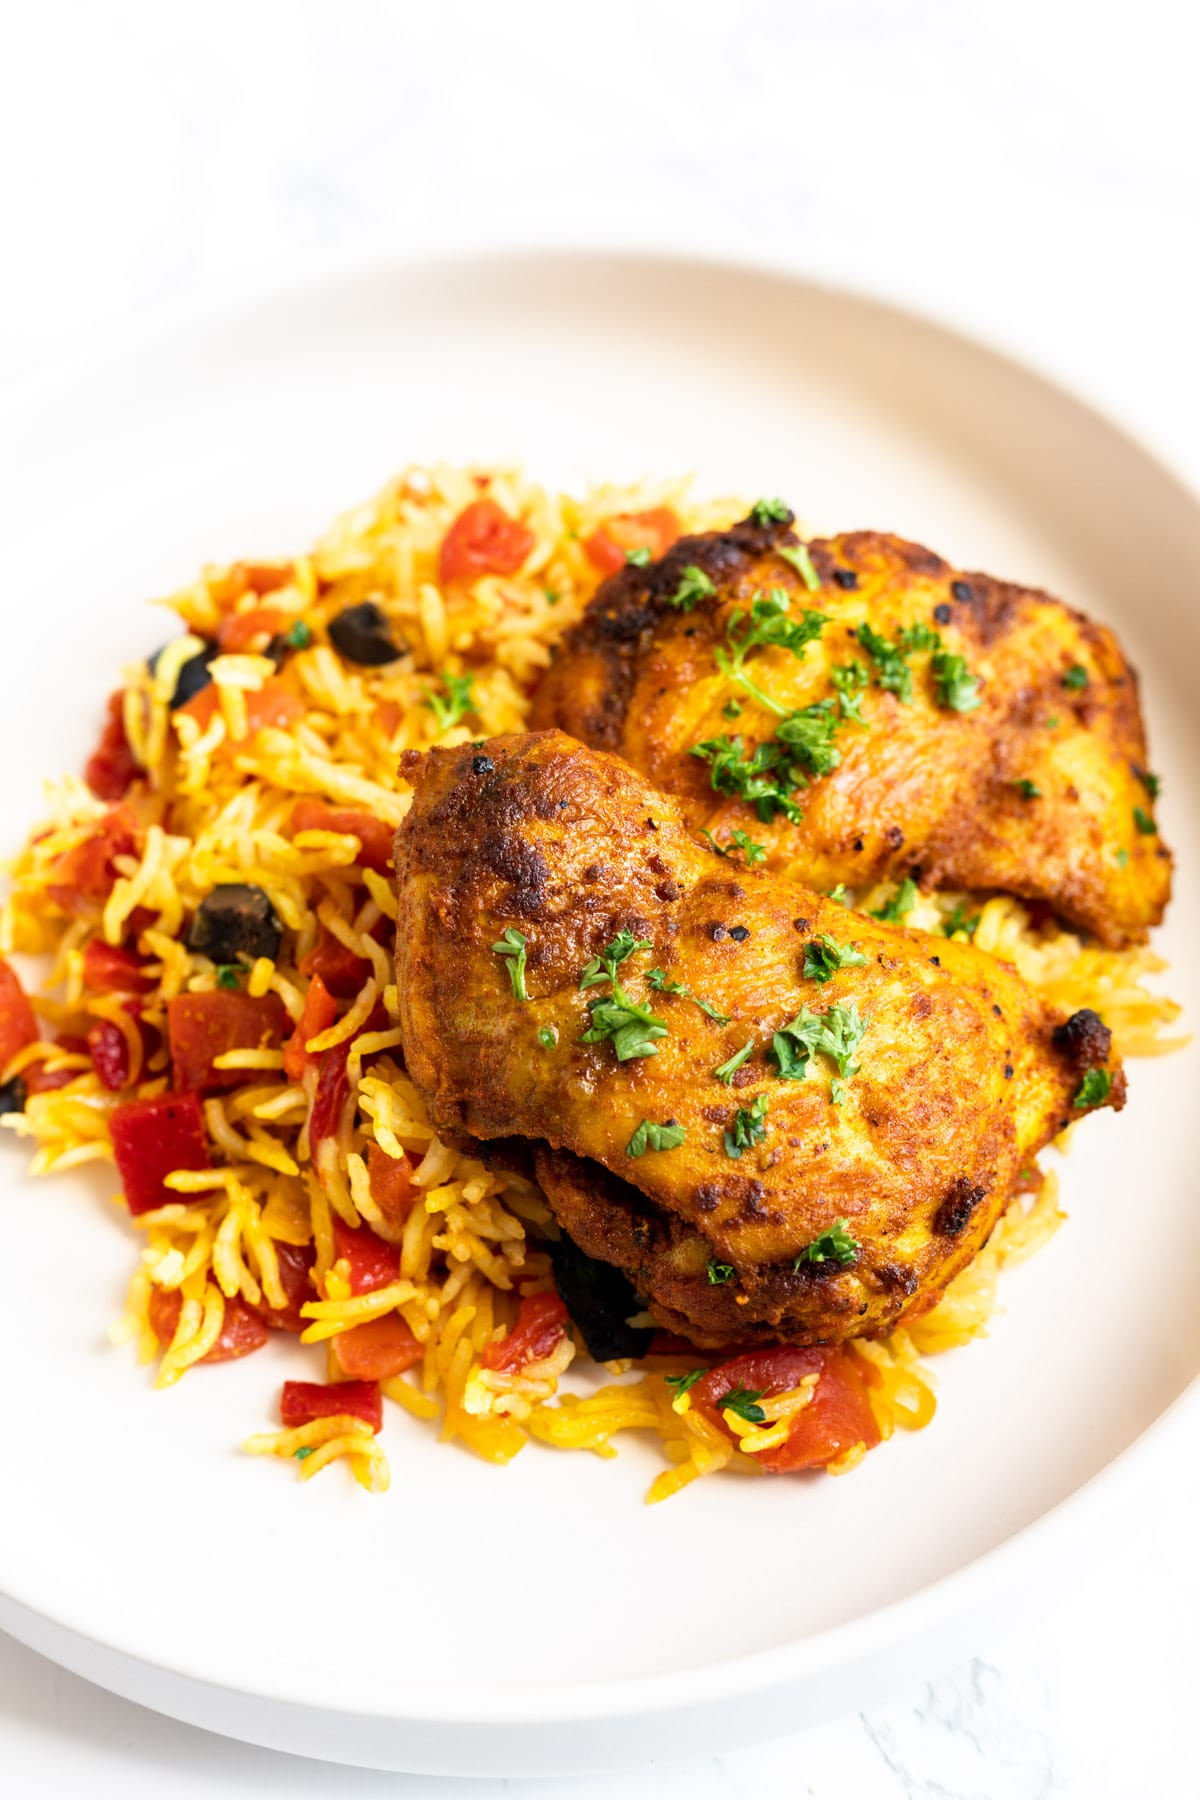 Spanish chicken and rice served on a plate.